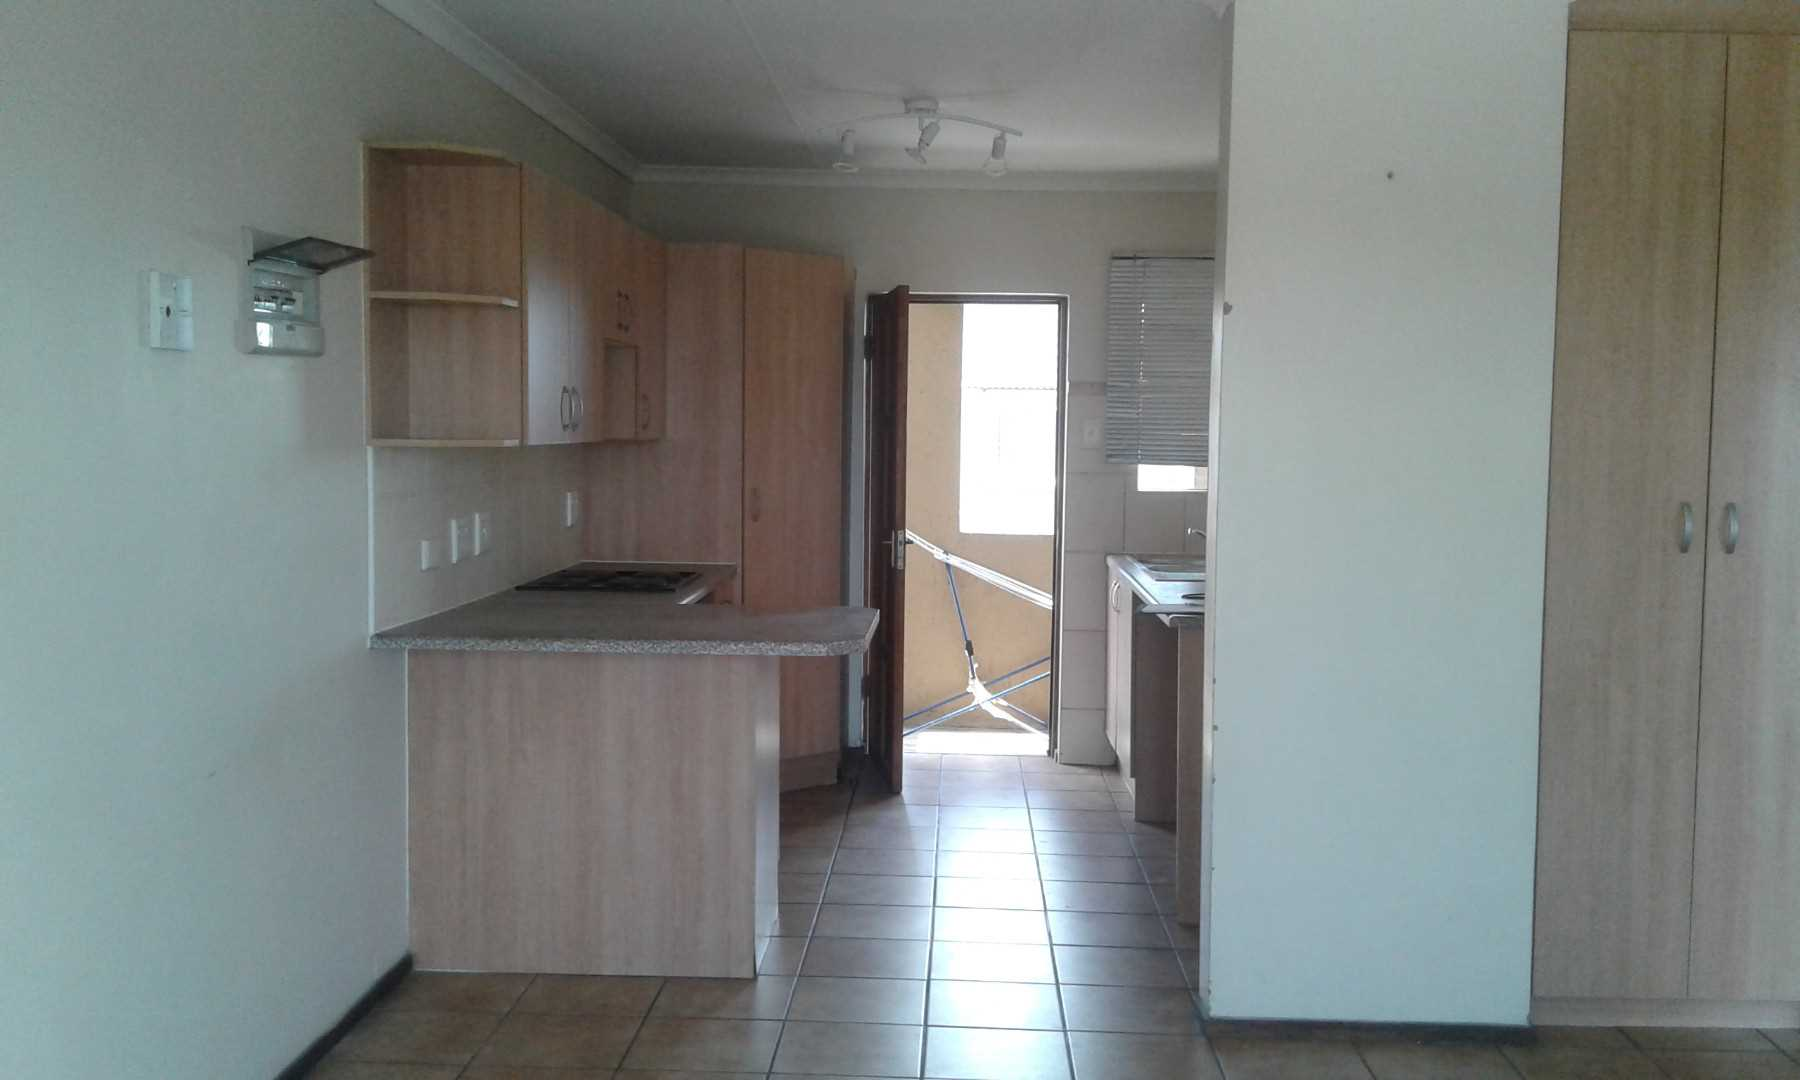 Kitchen is open plan with living room.